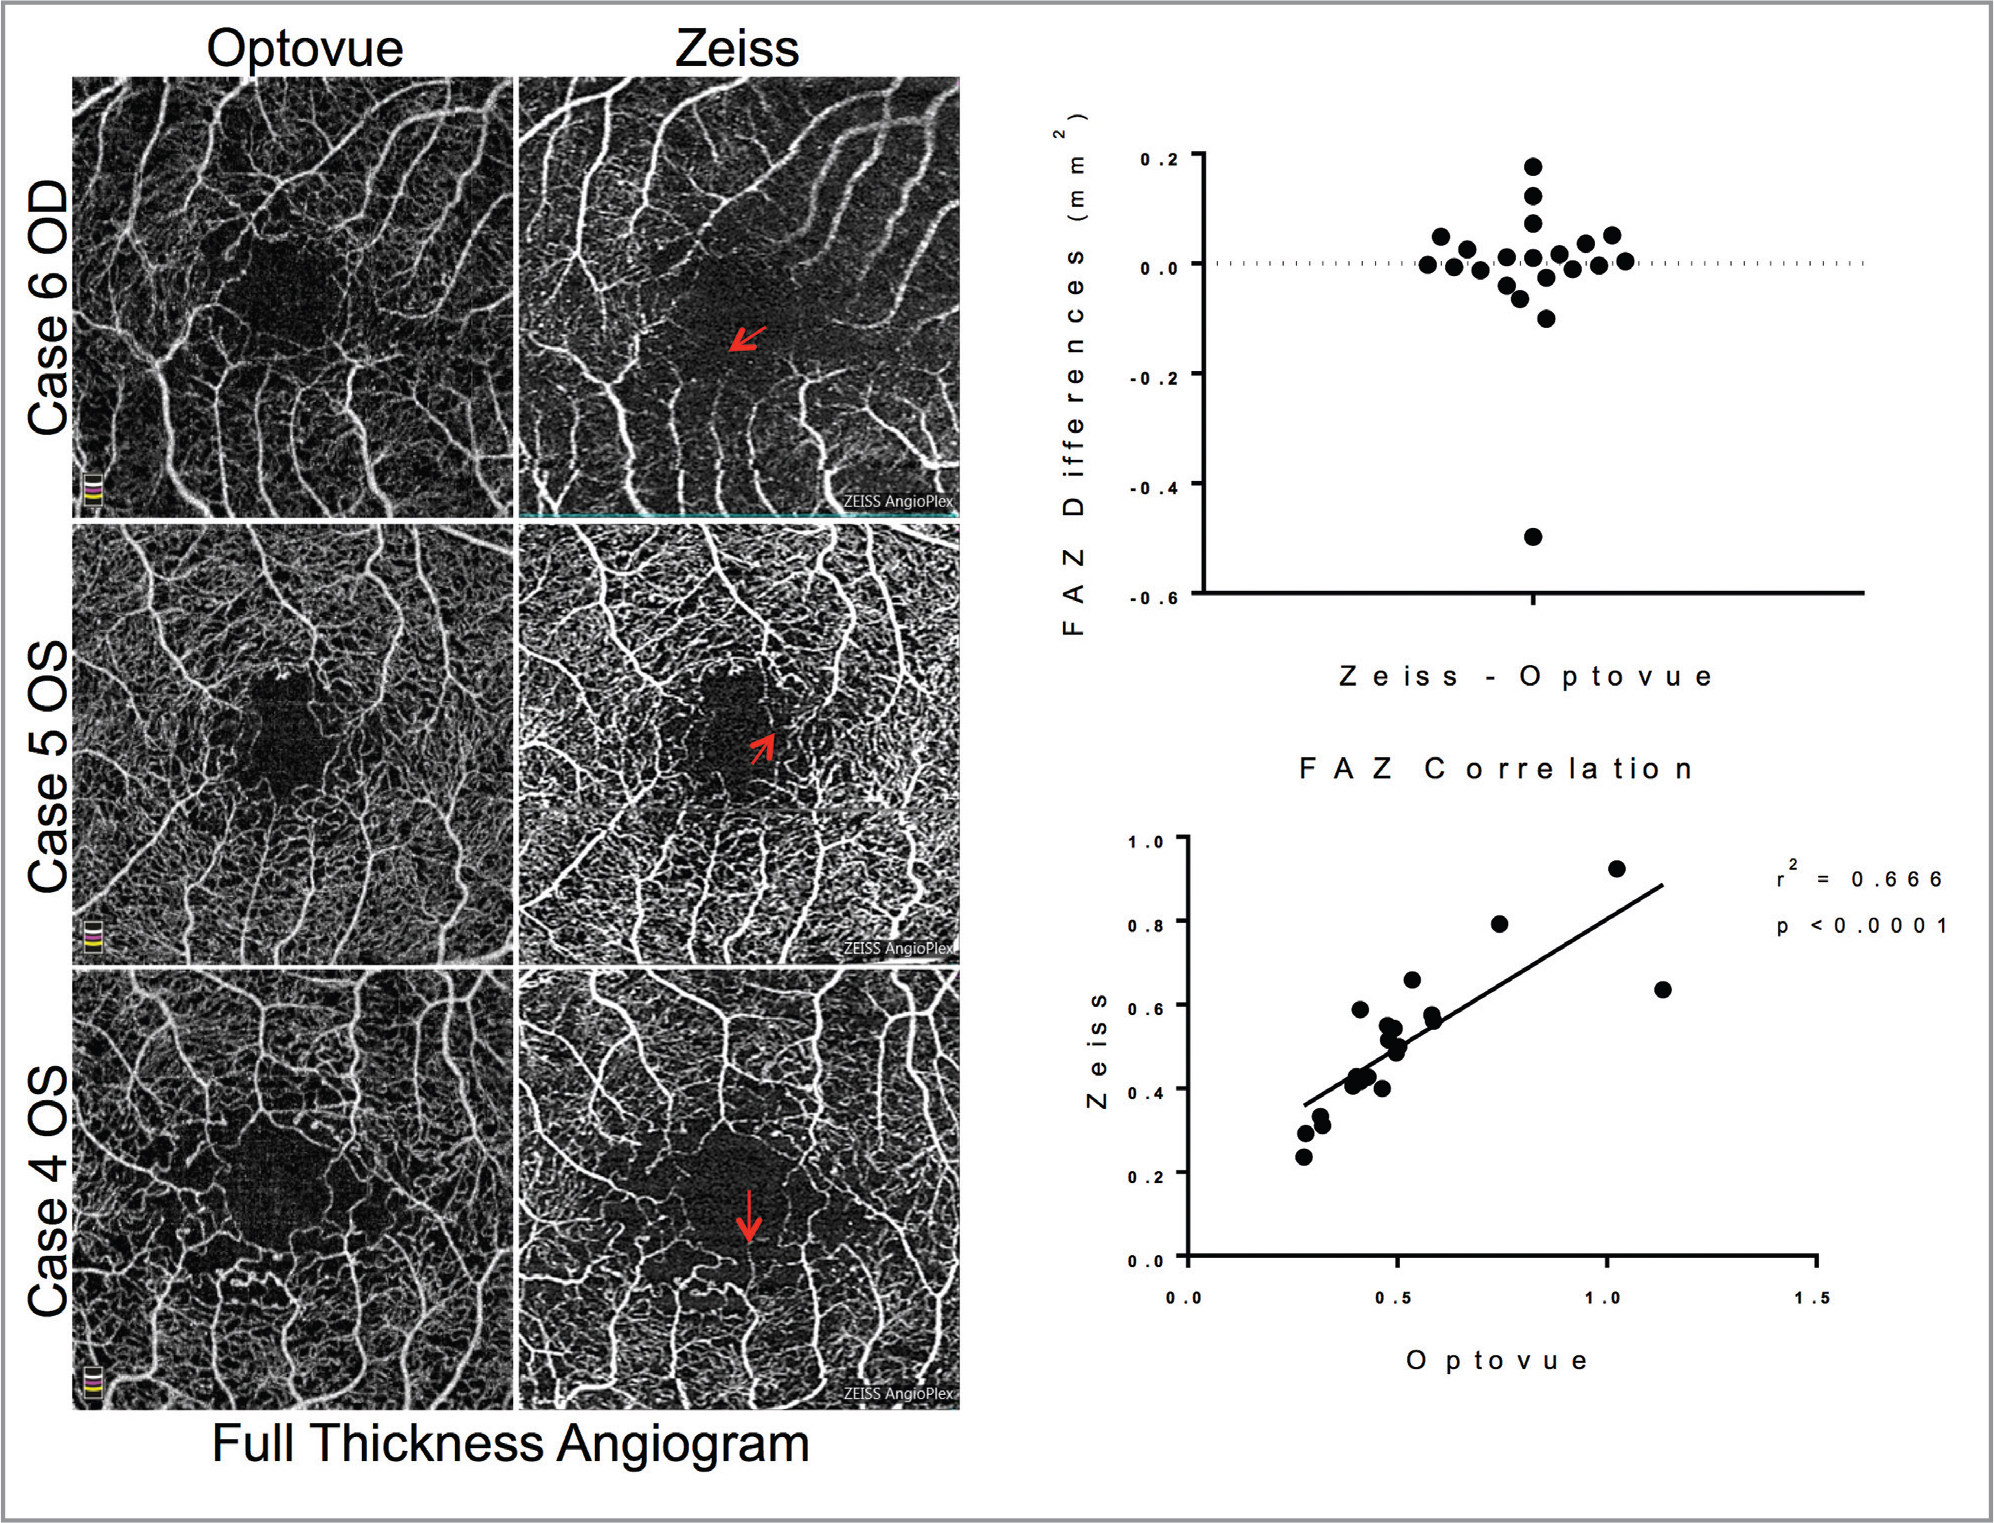 Foveal avascular zone (FAZ) on full retinal thickness angiogram. Representative images of full-thickness angiograms, red arrows pointing to vessel discontinuity along the FAZ border (left). Difference in measured FAZ area between the two instruments for each eye, n = 21 (upper right). Correlation of FAZ areas between the two instruments, line shows a best-fit linear regression with each point representing a single eye plotted against the measured FAZ on each machine, n = 21 (lower right).